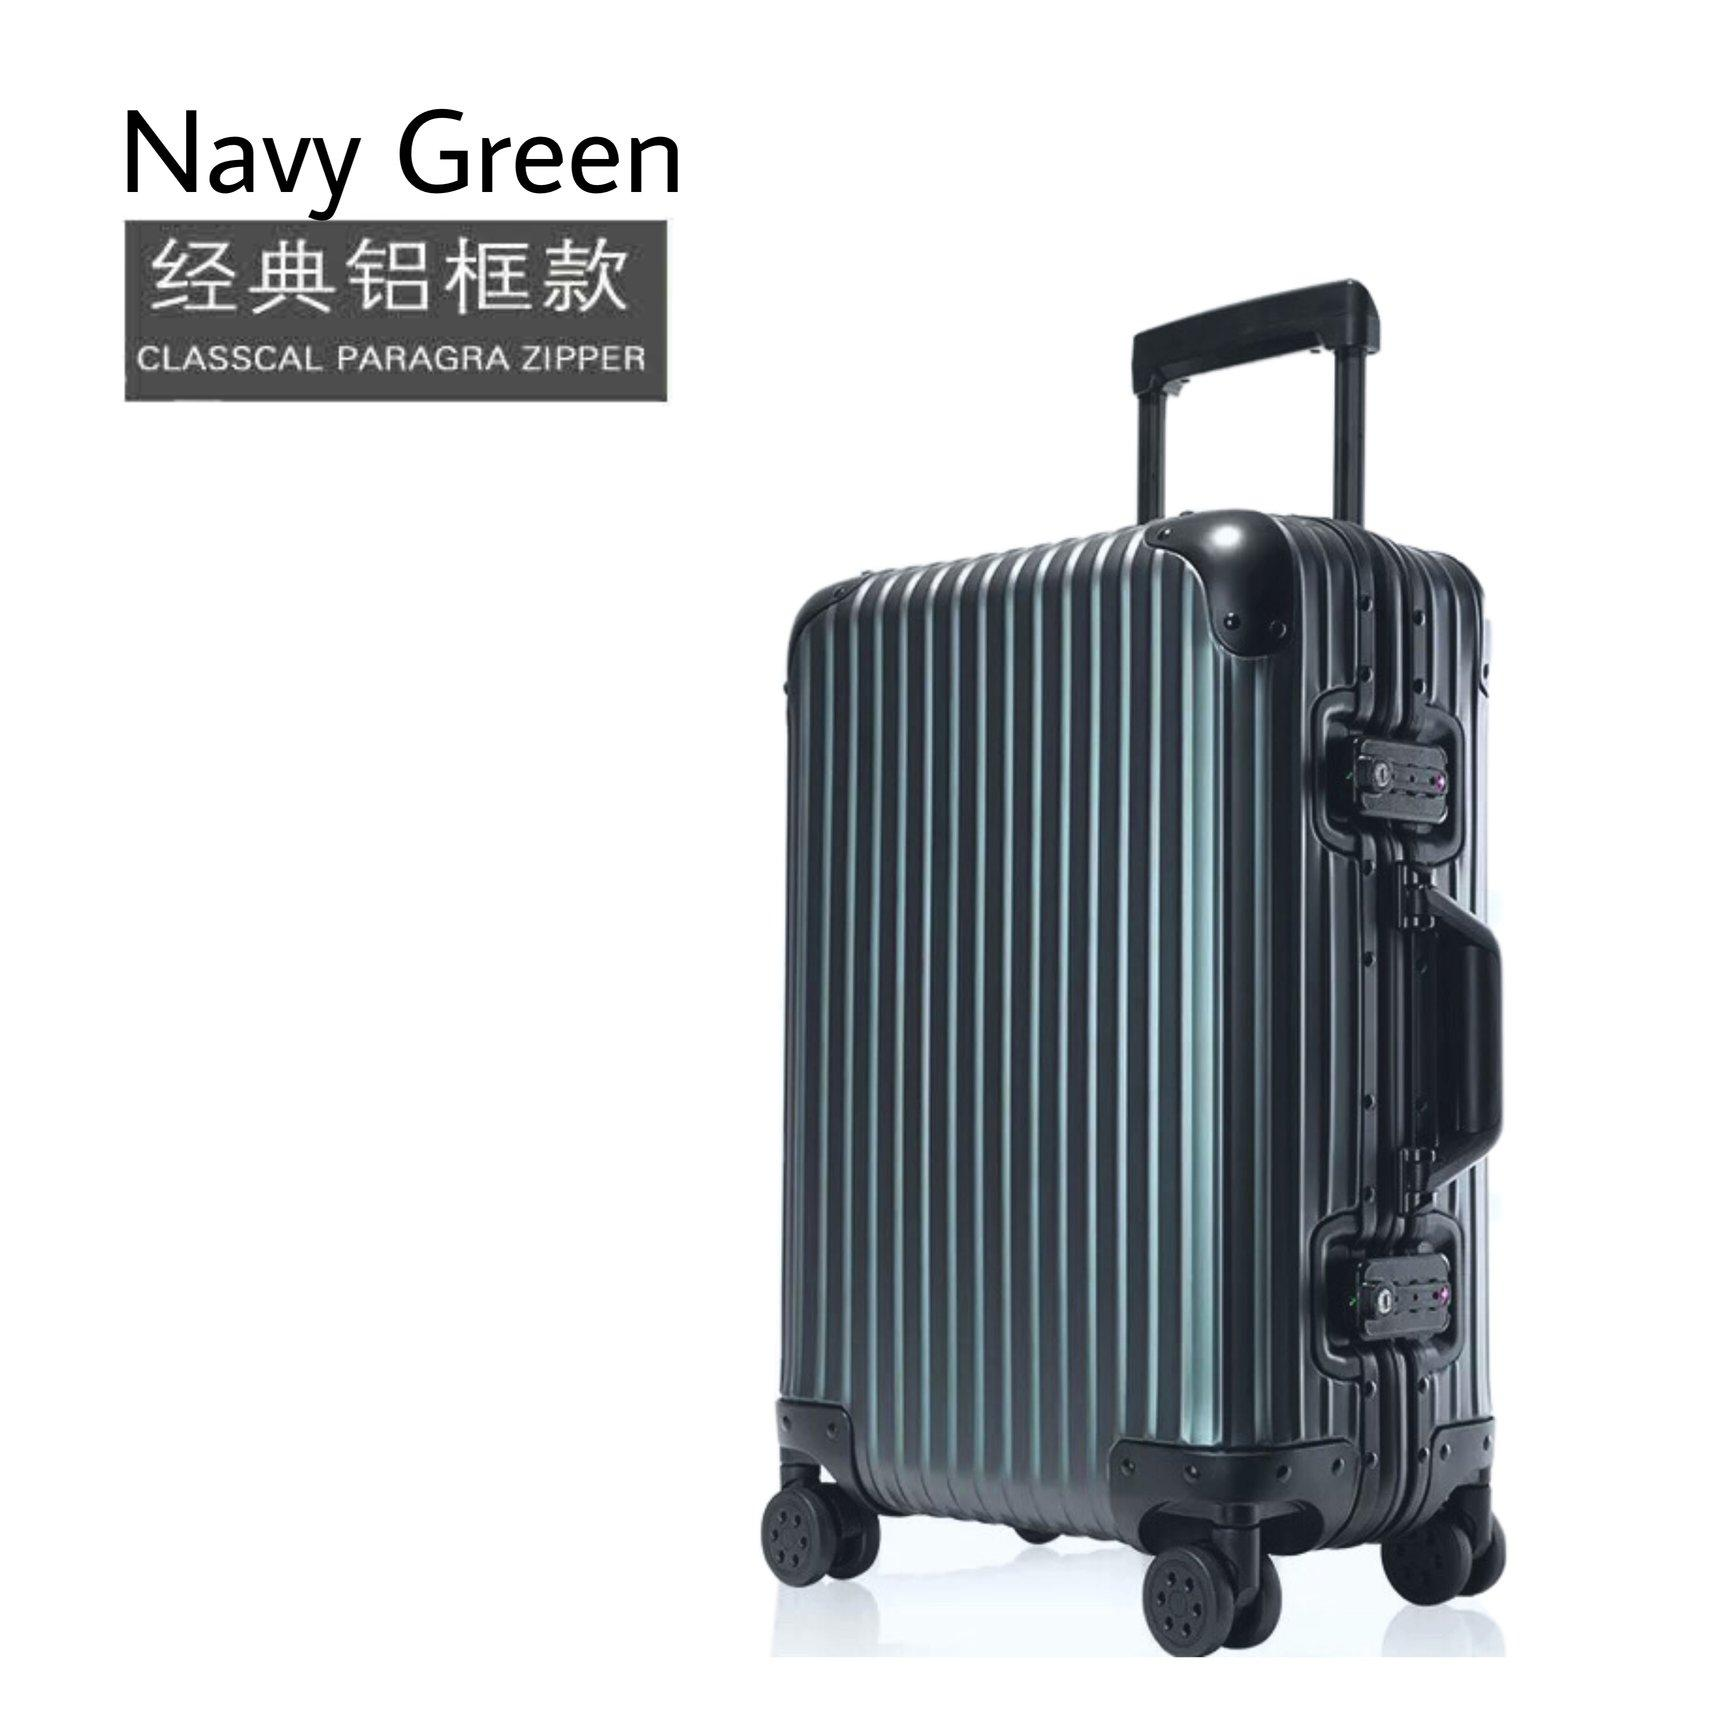 2019 New Solid Small Big Lock Aluminium Alloy Frame Travel Luggage Case With TSA  / Cabin Size Suitcase Trolley Bag / 360 Rotating Wheels 20 22 24 26 28 Inch Hand Carry Boarding Sets Free Cover Men Women Traveller Check In Light Weight Hard Shell  Baggage